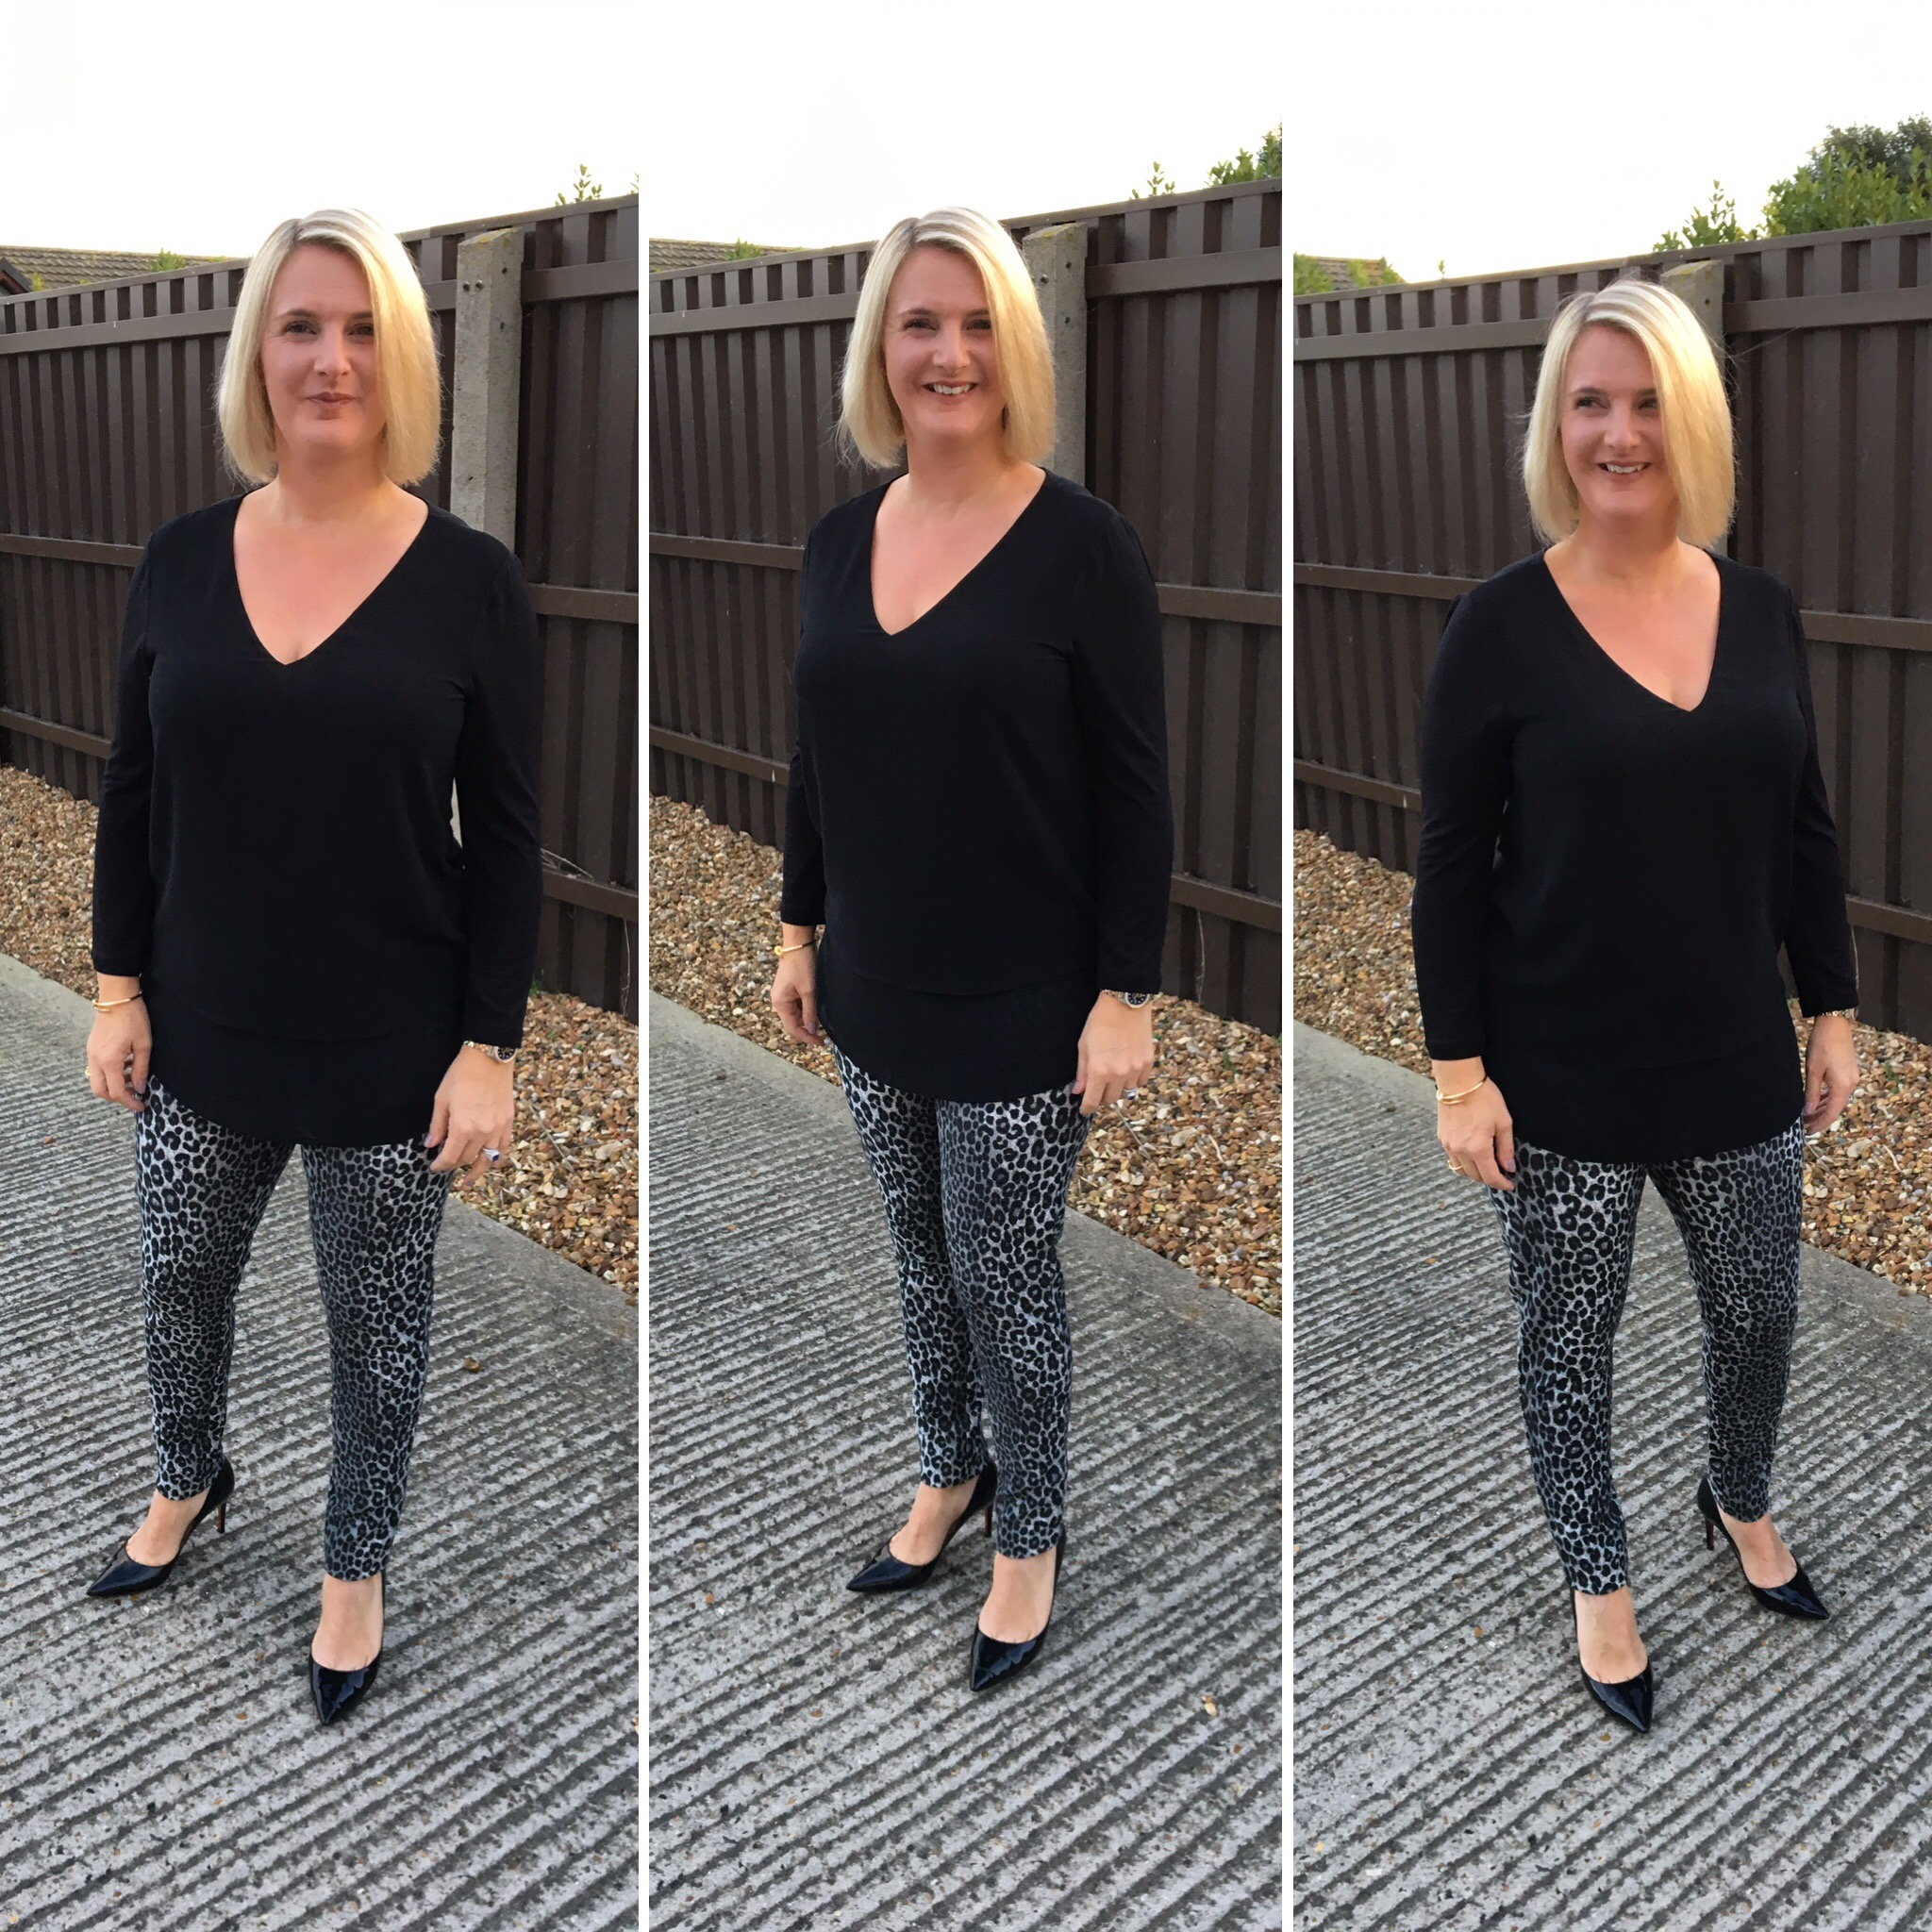 Top and Trousers from Michael Kors, Shoes from Christian Louboutin